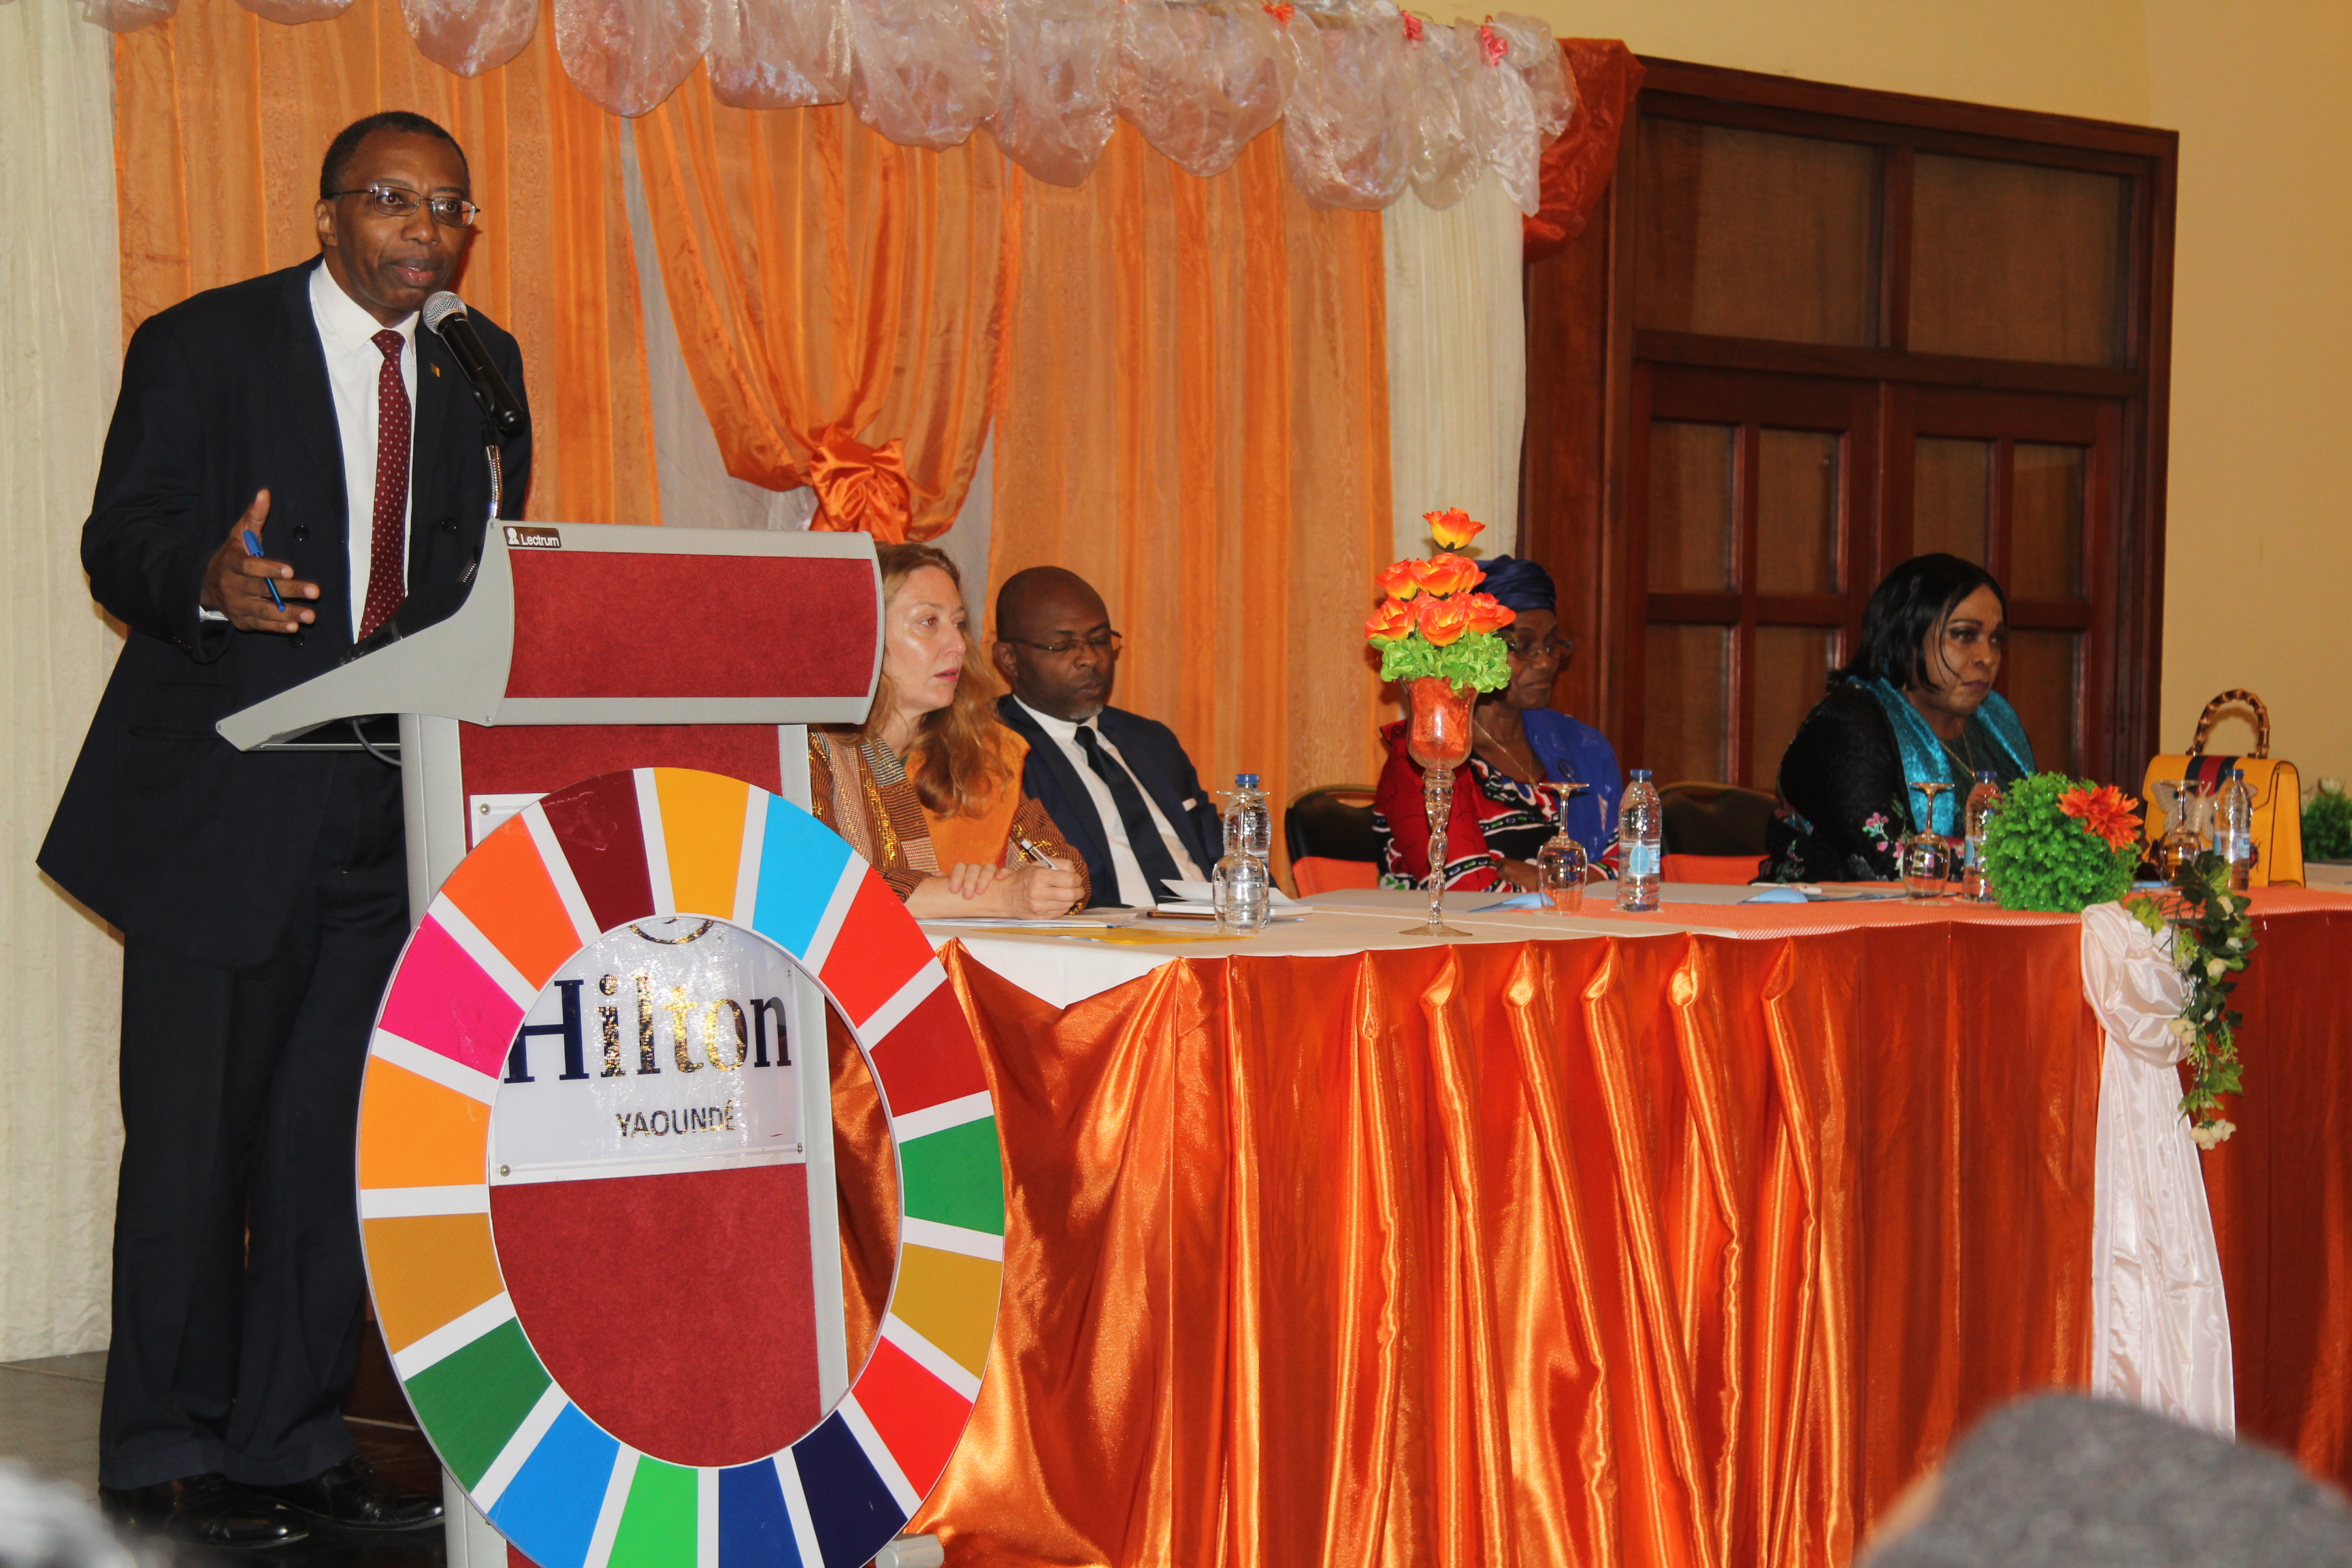 Professor Jean-Emmanuel Pondi, Vice Rector of the University of Yaoundé I, moderating the conference debate on sexual harassment in the university milieu during the ceremony to launch the 16 days of Activism campaign in Cameroon. Photo credit: Teclaire Same/UN Women